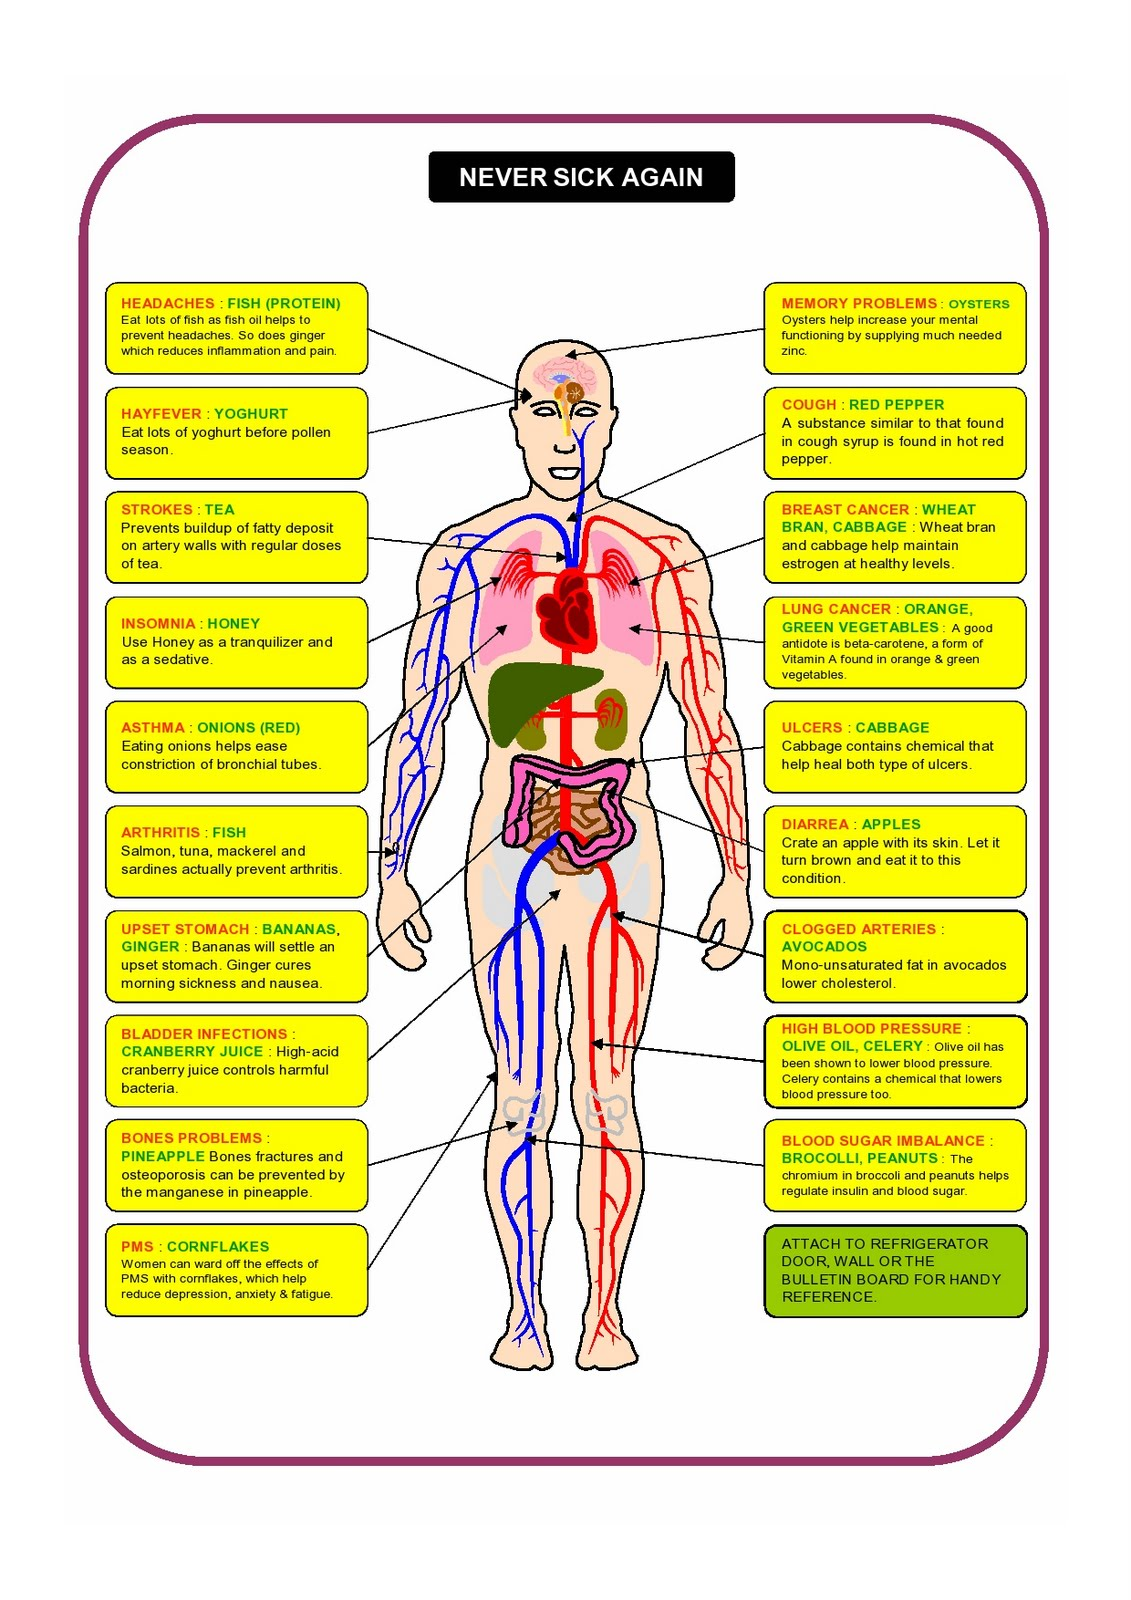 never sick again chart never sick again diagram health care tips health facts [ 1131 x 1600 Pixel ]